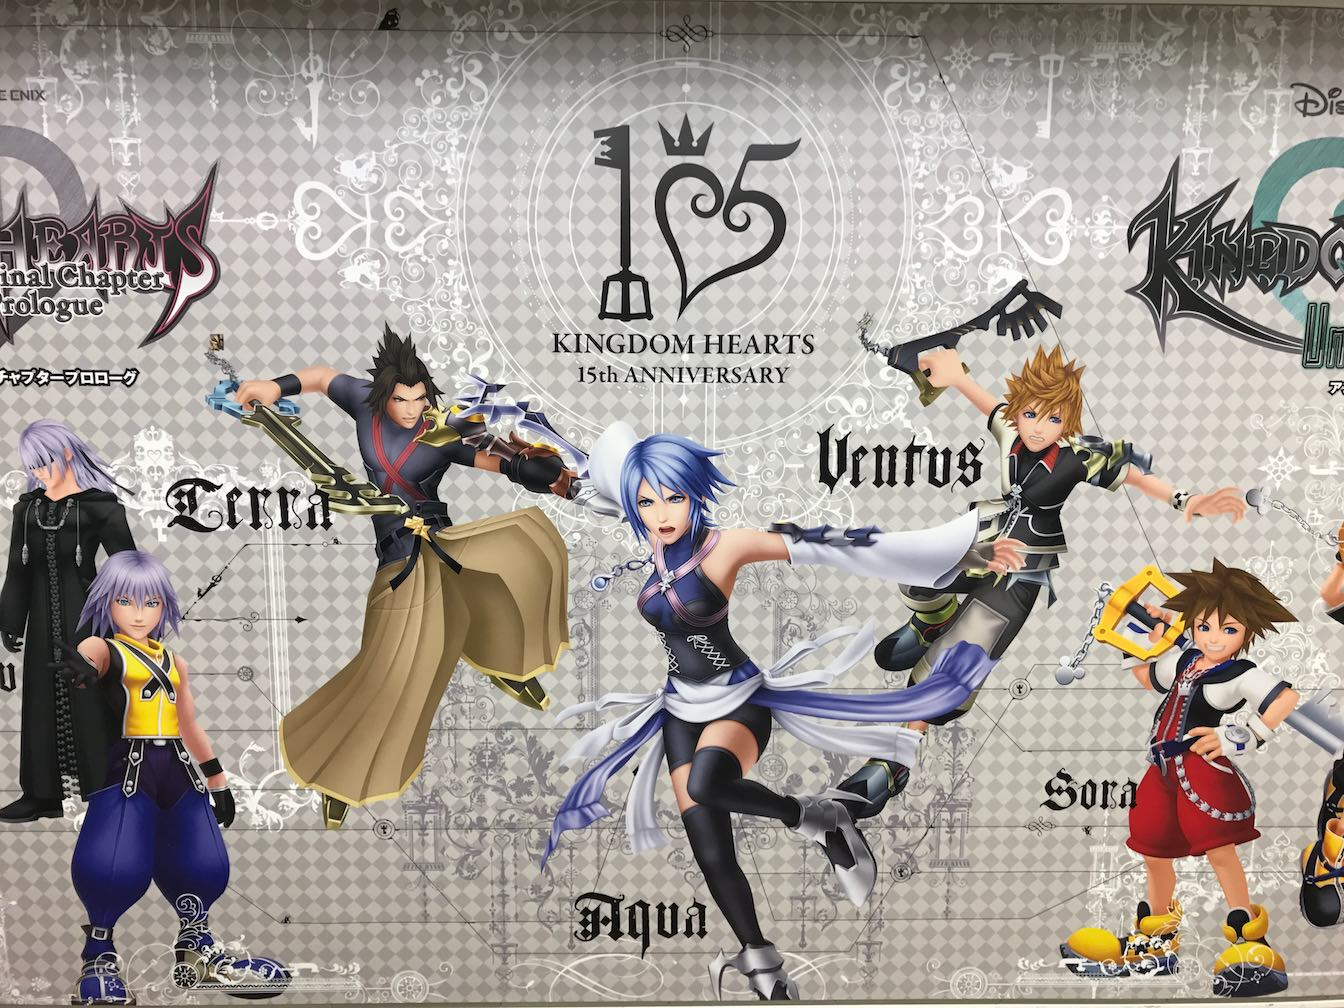 Kingdomhearts 15th anniversary exhibition at shinjuku 9